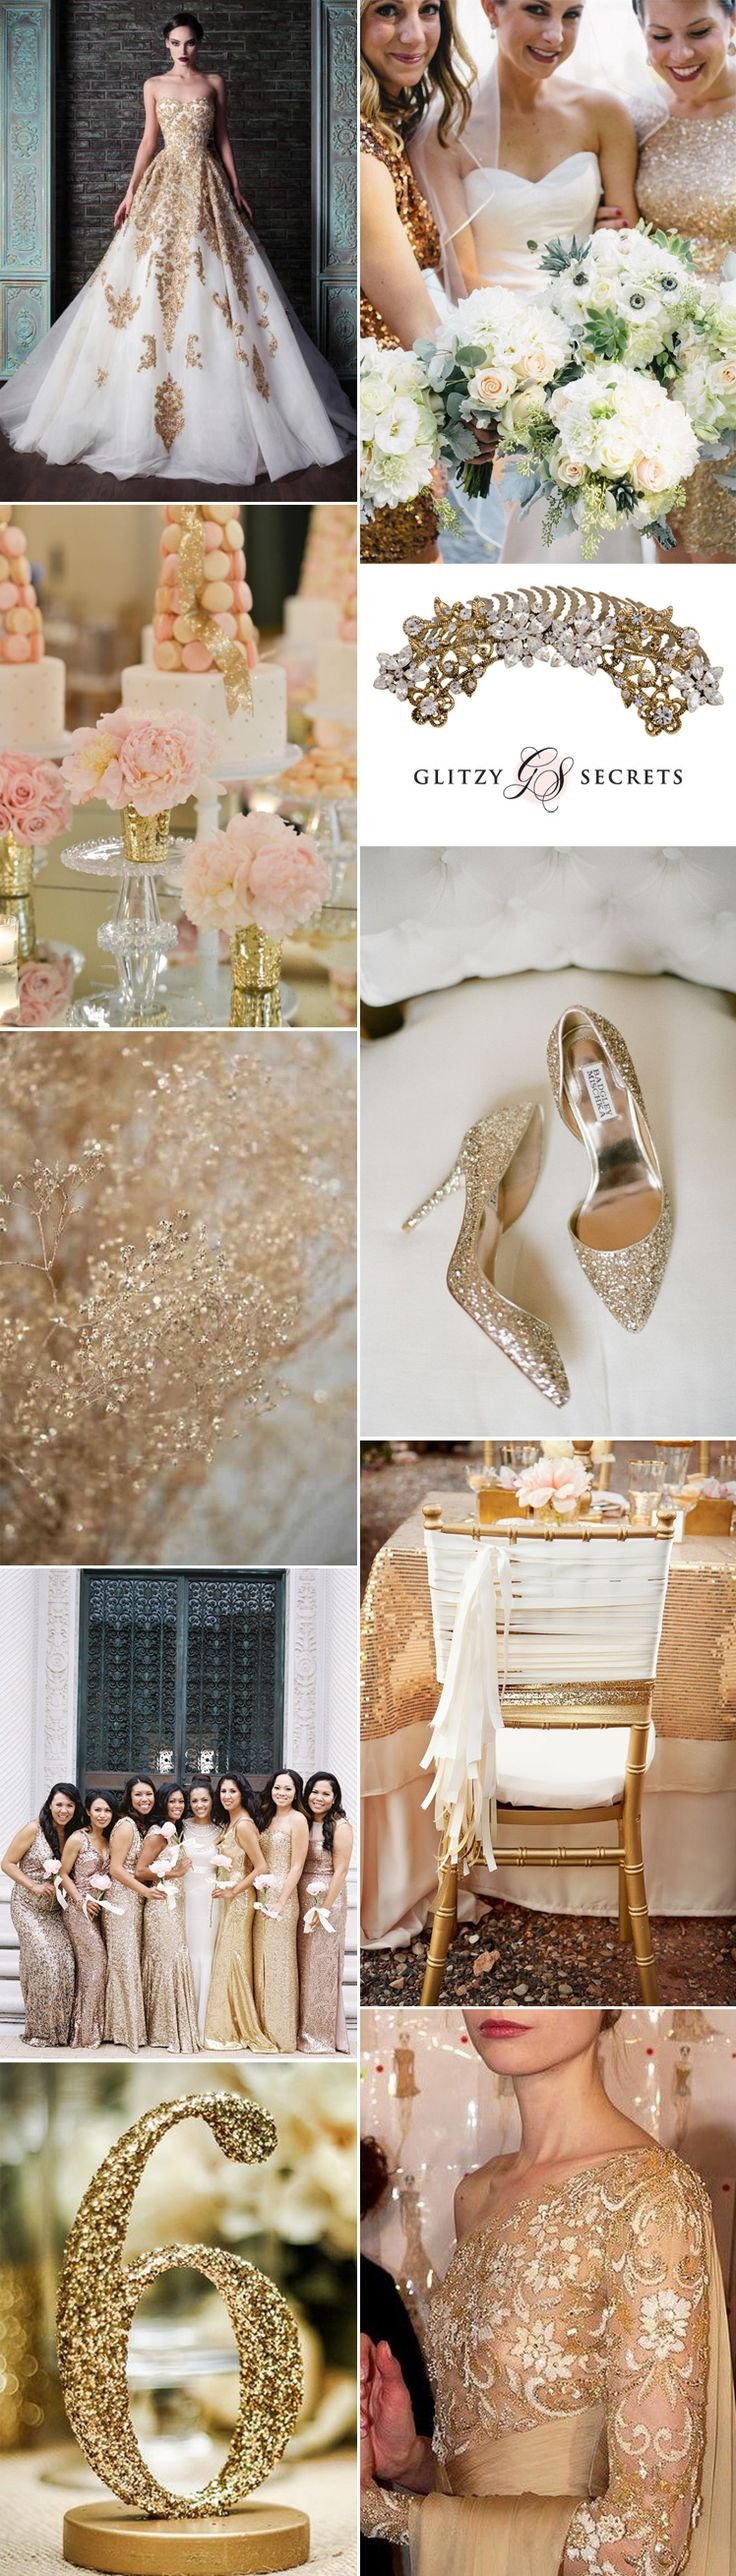 Explore Glitzy Secrets' decadent gold wedding ideas on GS Inspiration today